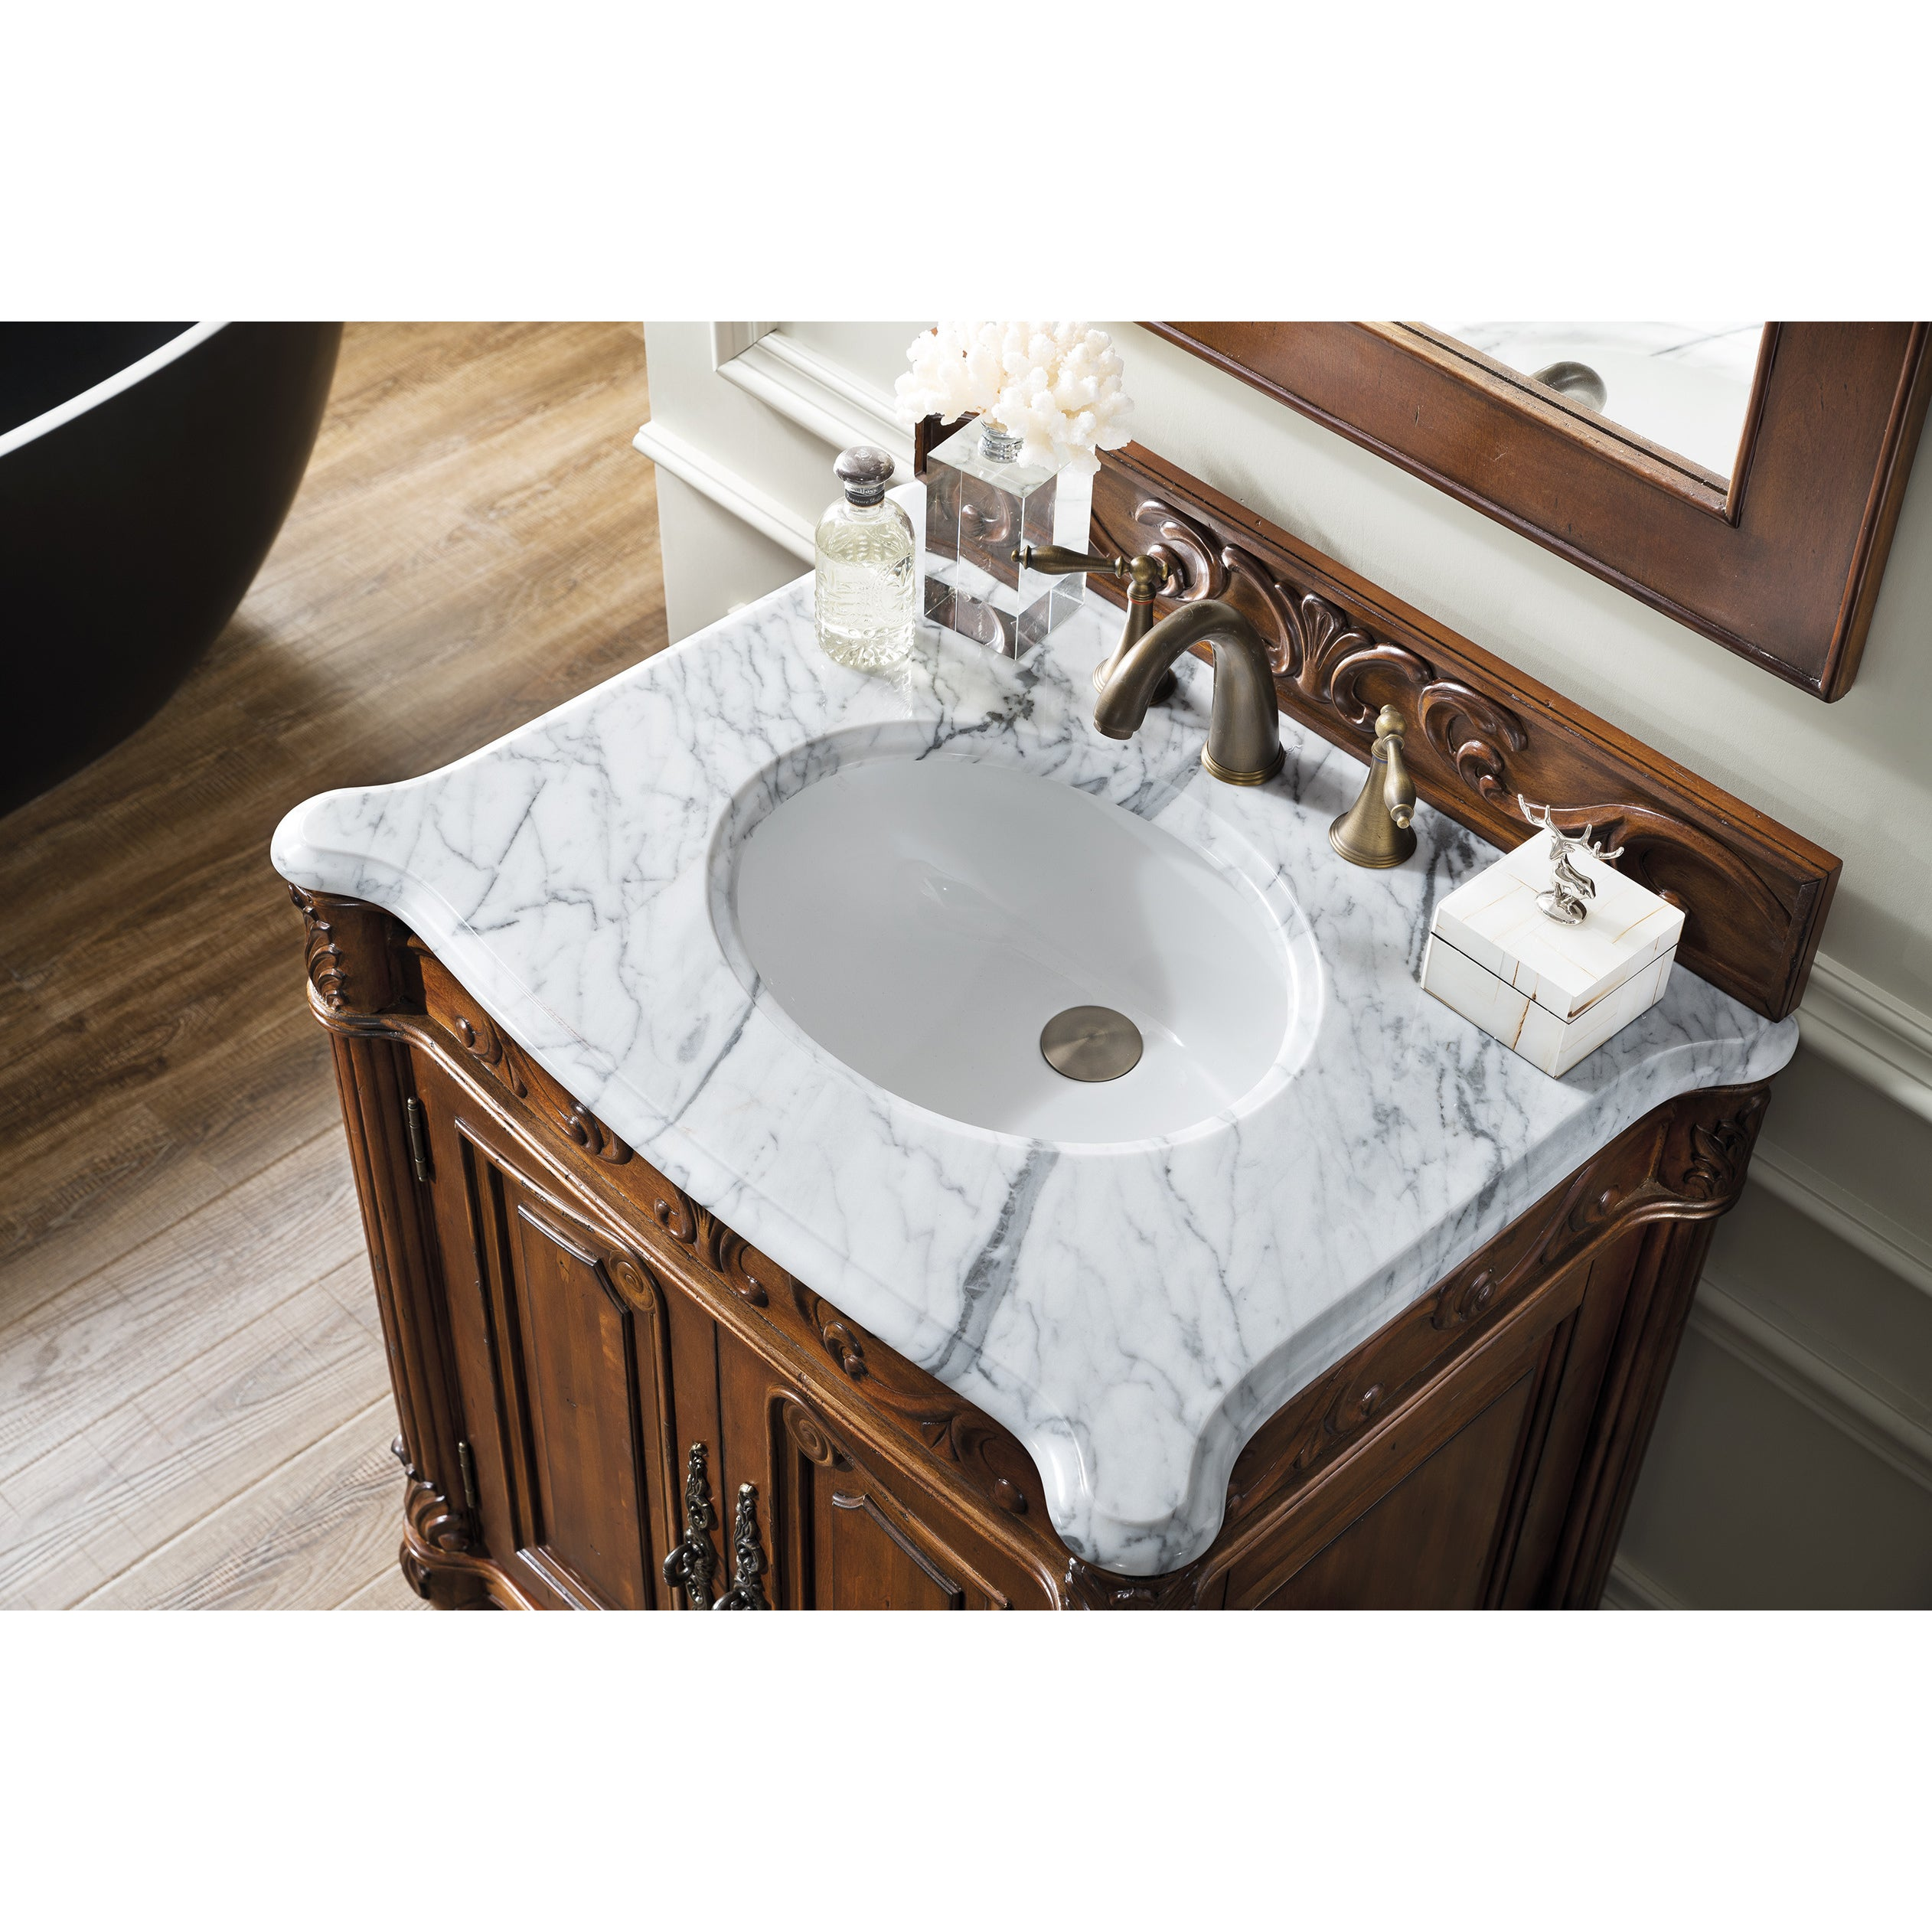 Shop St James Cherry 30 Inch Single Bathroom Vanity Free Shipping